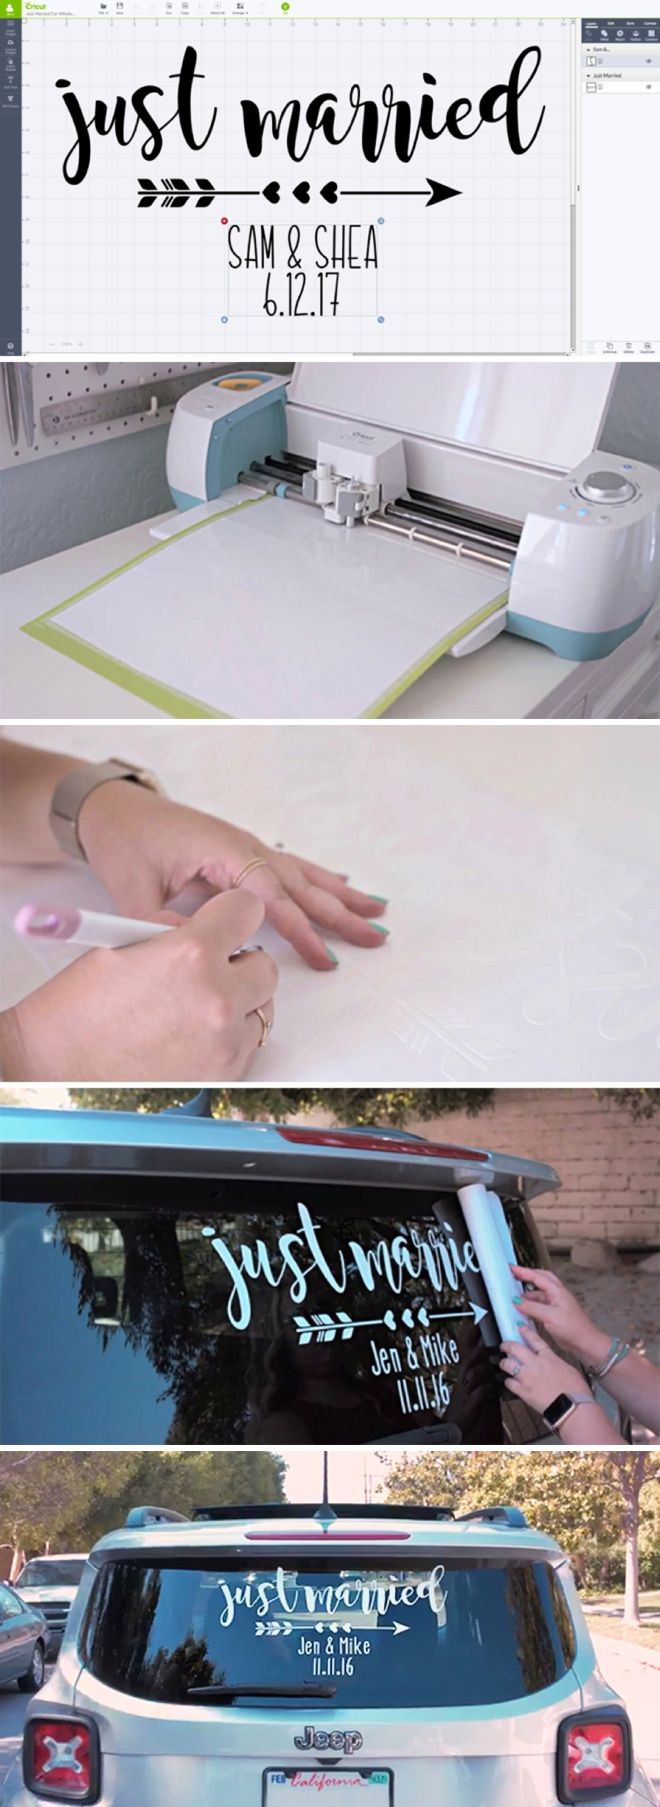 How To Make A Vinyl Car Window Decal Sticker With Cricut Explore - How to make car decals with cricut expression